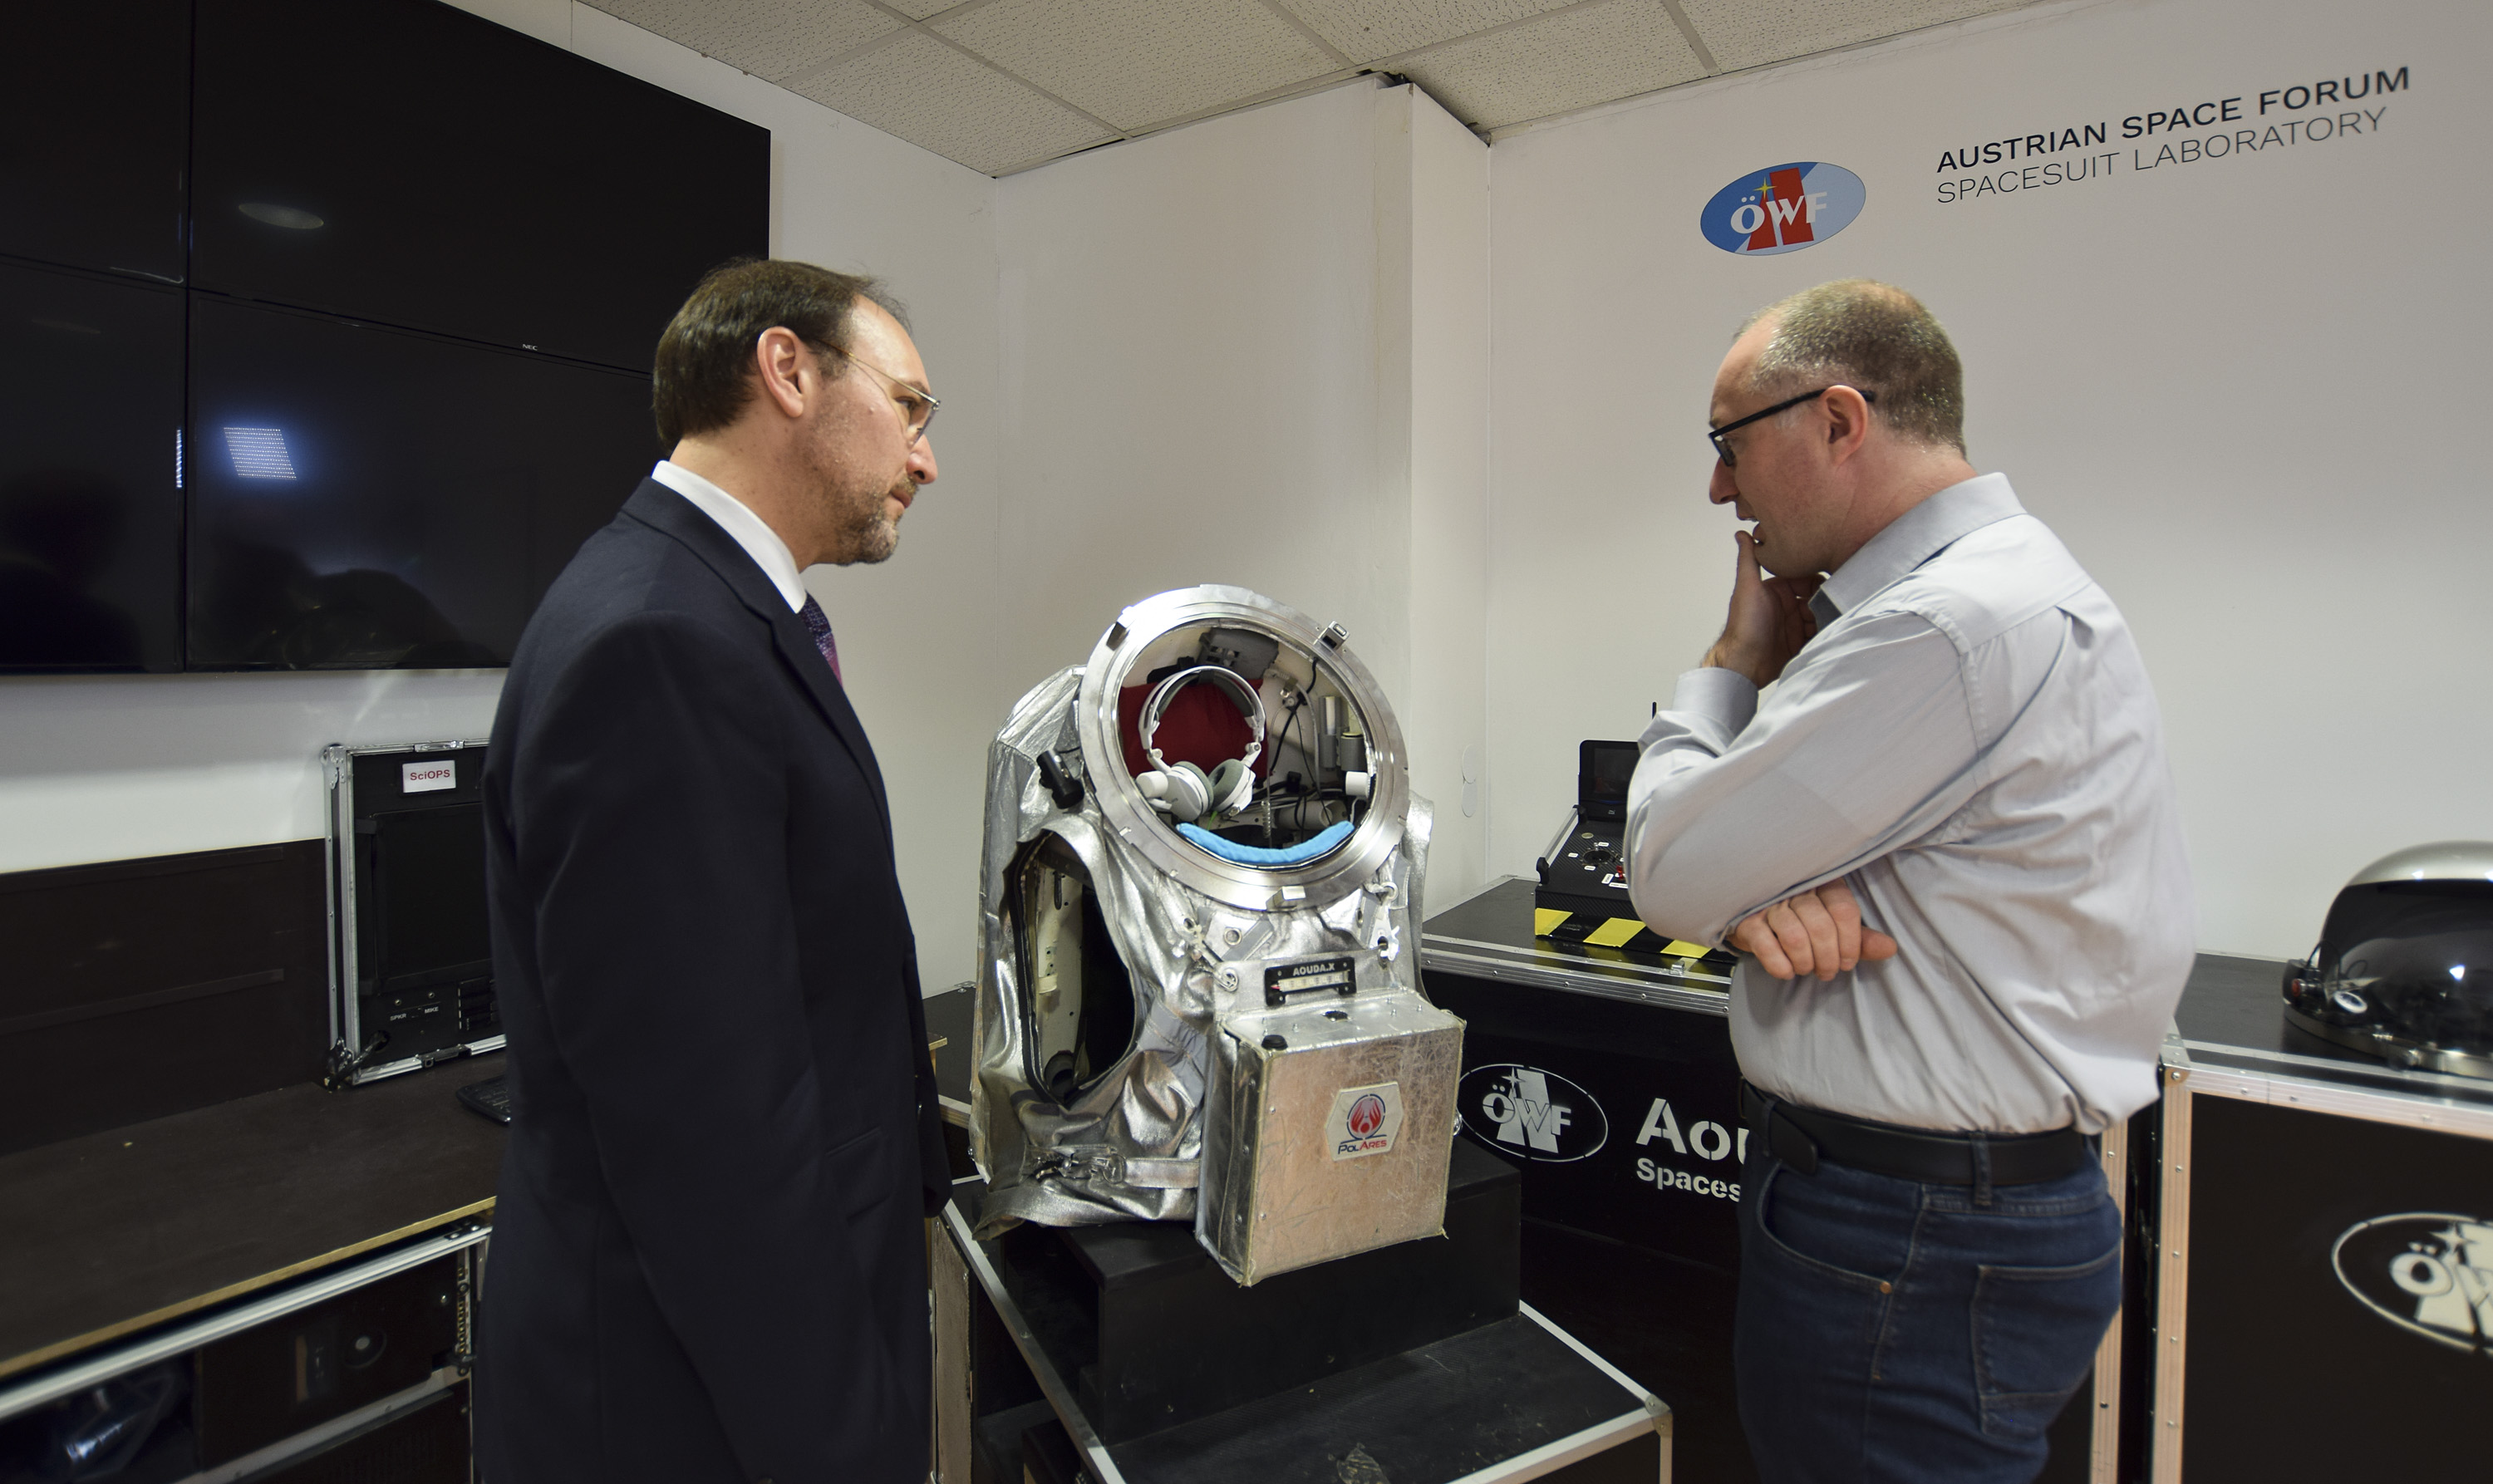 OeWF director Gernot Groemer (right) explains Leonard Dudzinski the Aouda spacesuit simulator